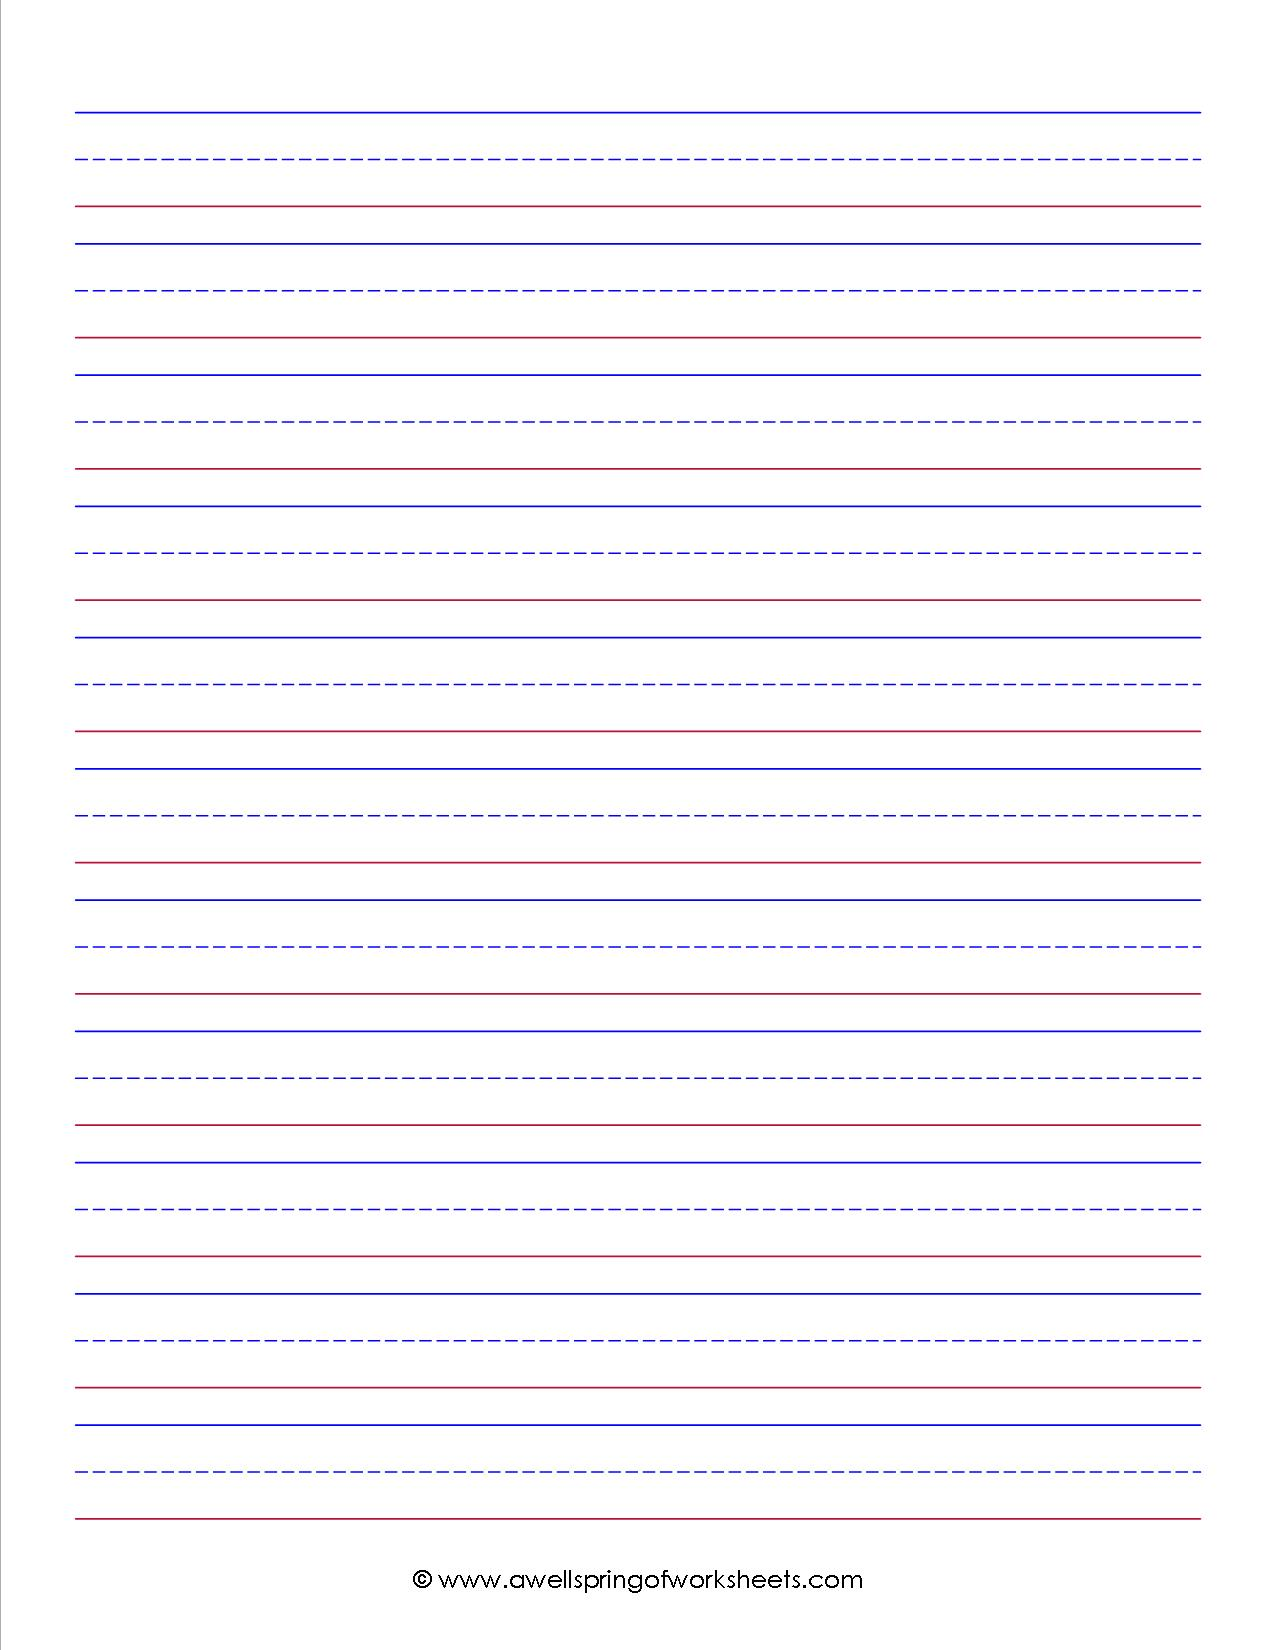 .primary writing paper vertical with illustration box and lines by